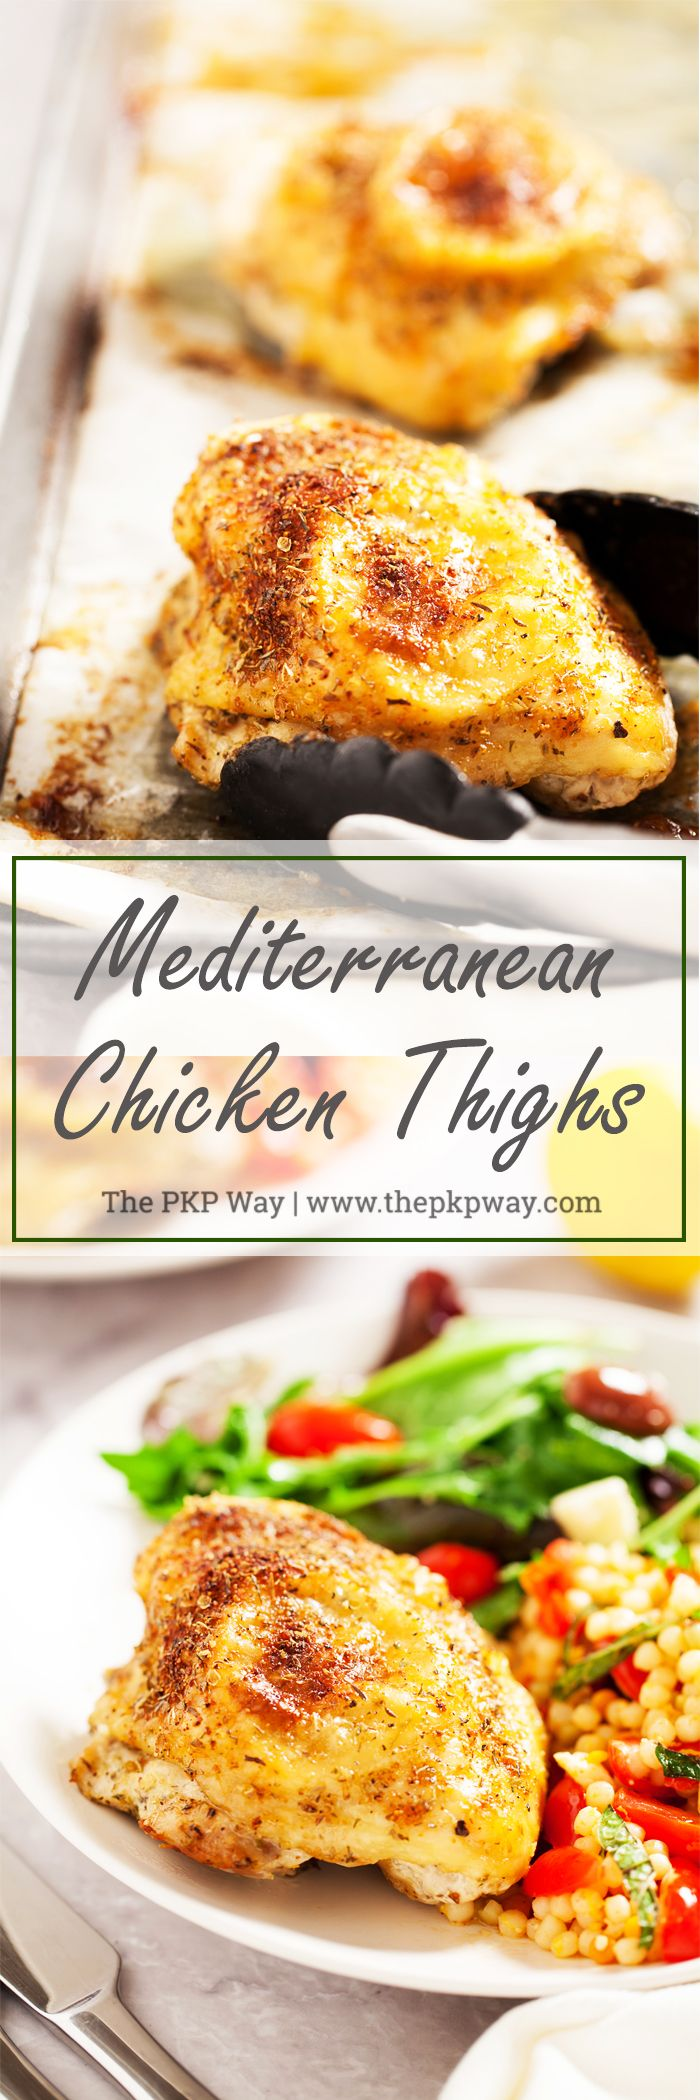 1420 best dinner ideas images on pinterest beef recipes for What should i make for dinner with chicken